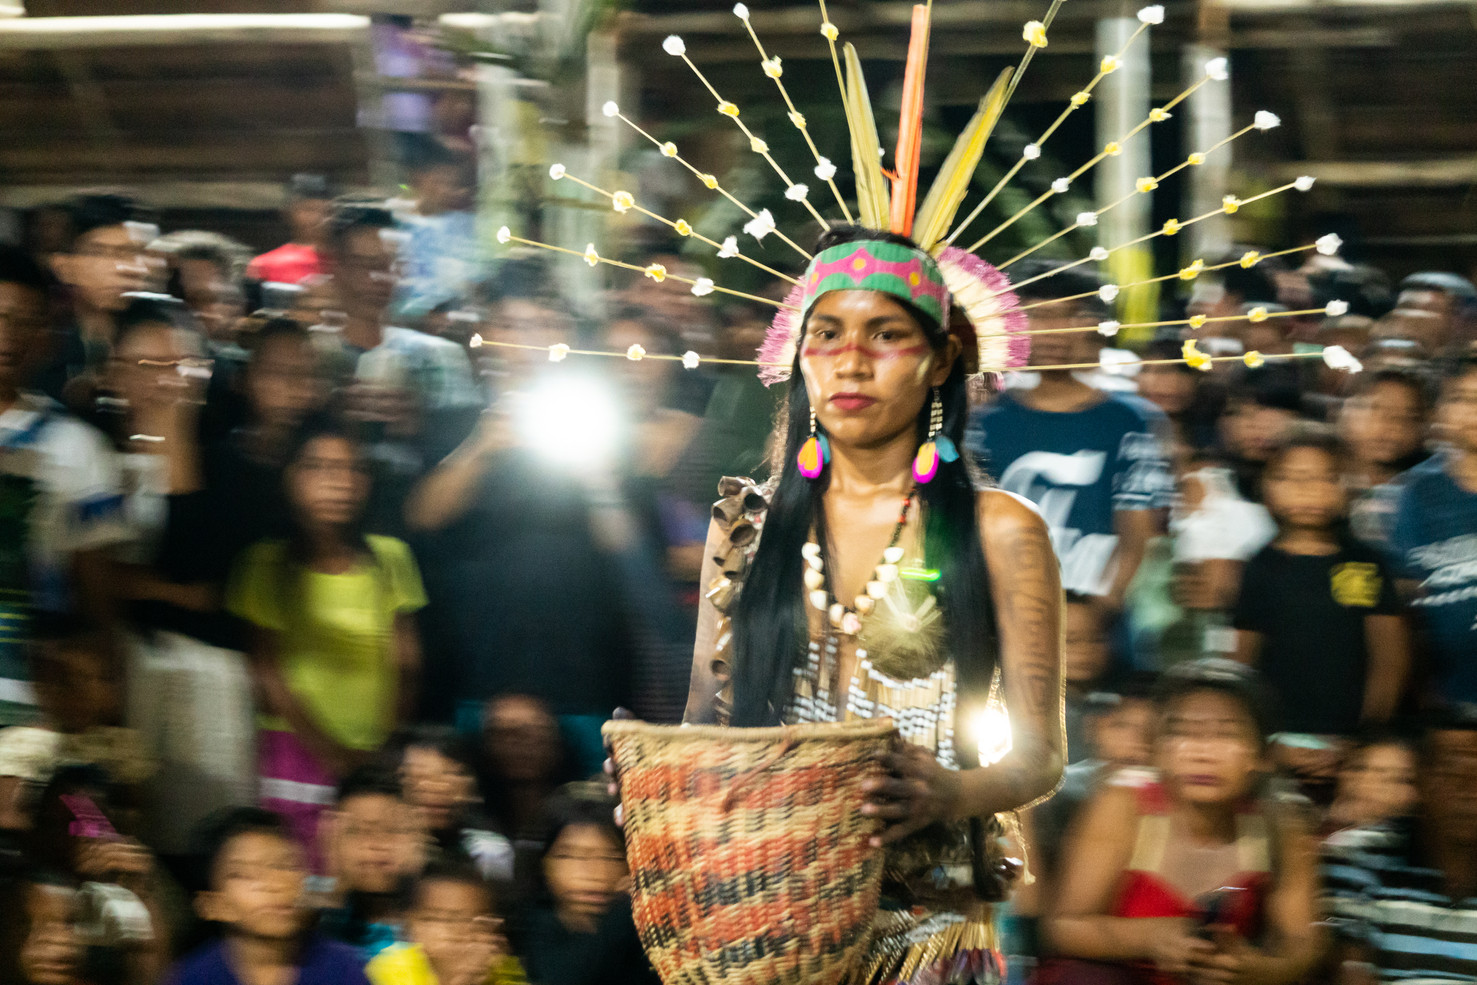 Closing ceremony of the 12th Ordinary Assembly of COIAB (Coordination of Indigenous Organizations of the Brazilian Amazon) in Santo Antonio do Iça, Amazonas state, Brazil, September 2019. Around 300 indigenous leaders gathered to reaffirm the 519 years of resistance in the struggle to ensure and strengthen the rights to their territories and the right to preserve their cultures. This event takes place every two years.